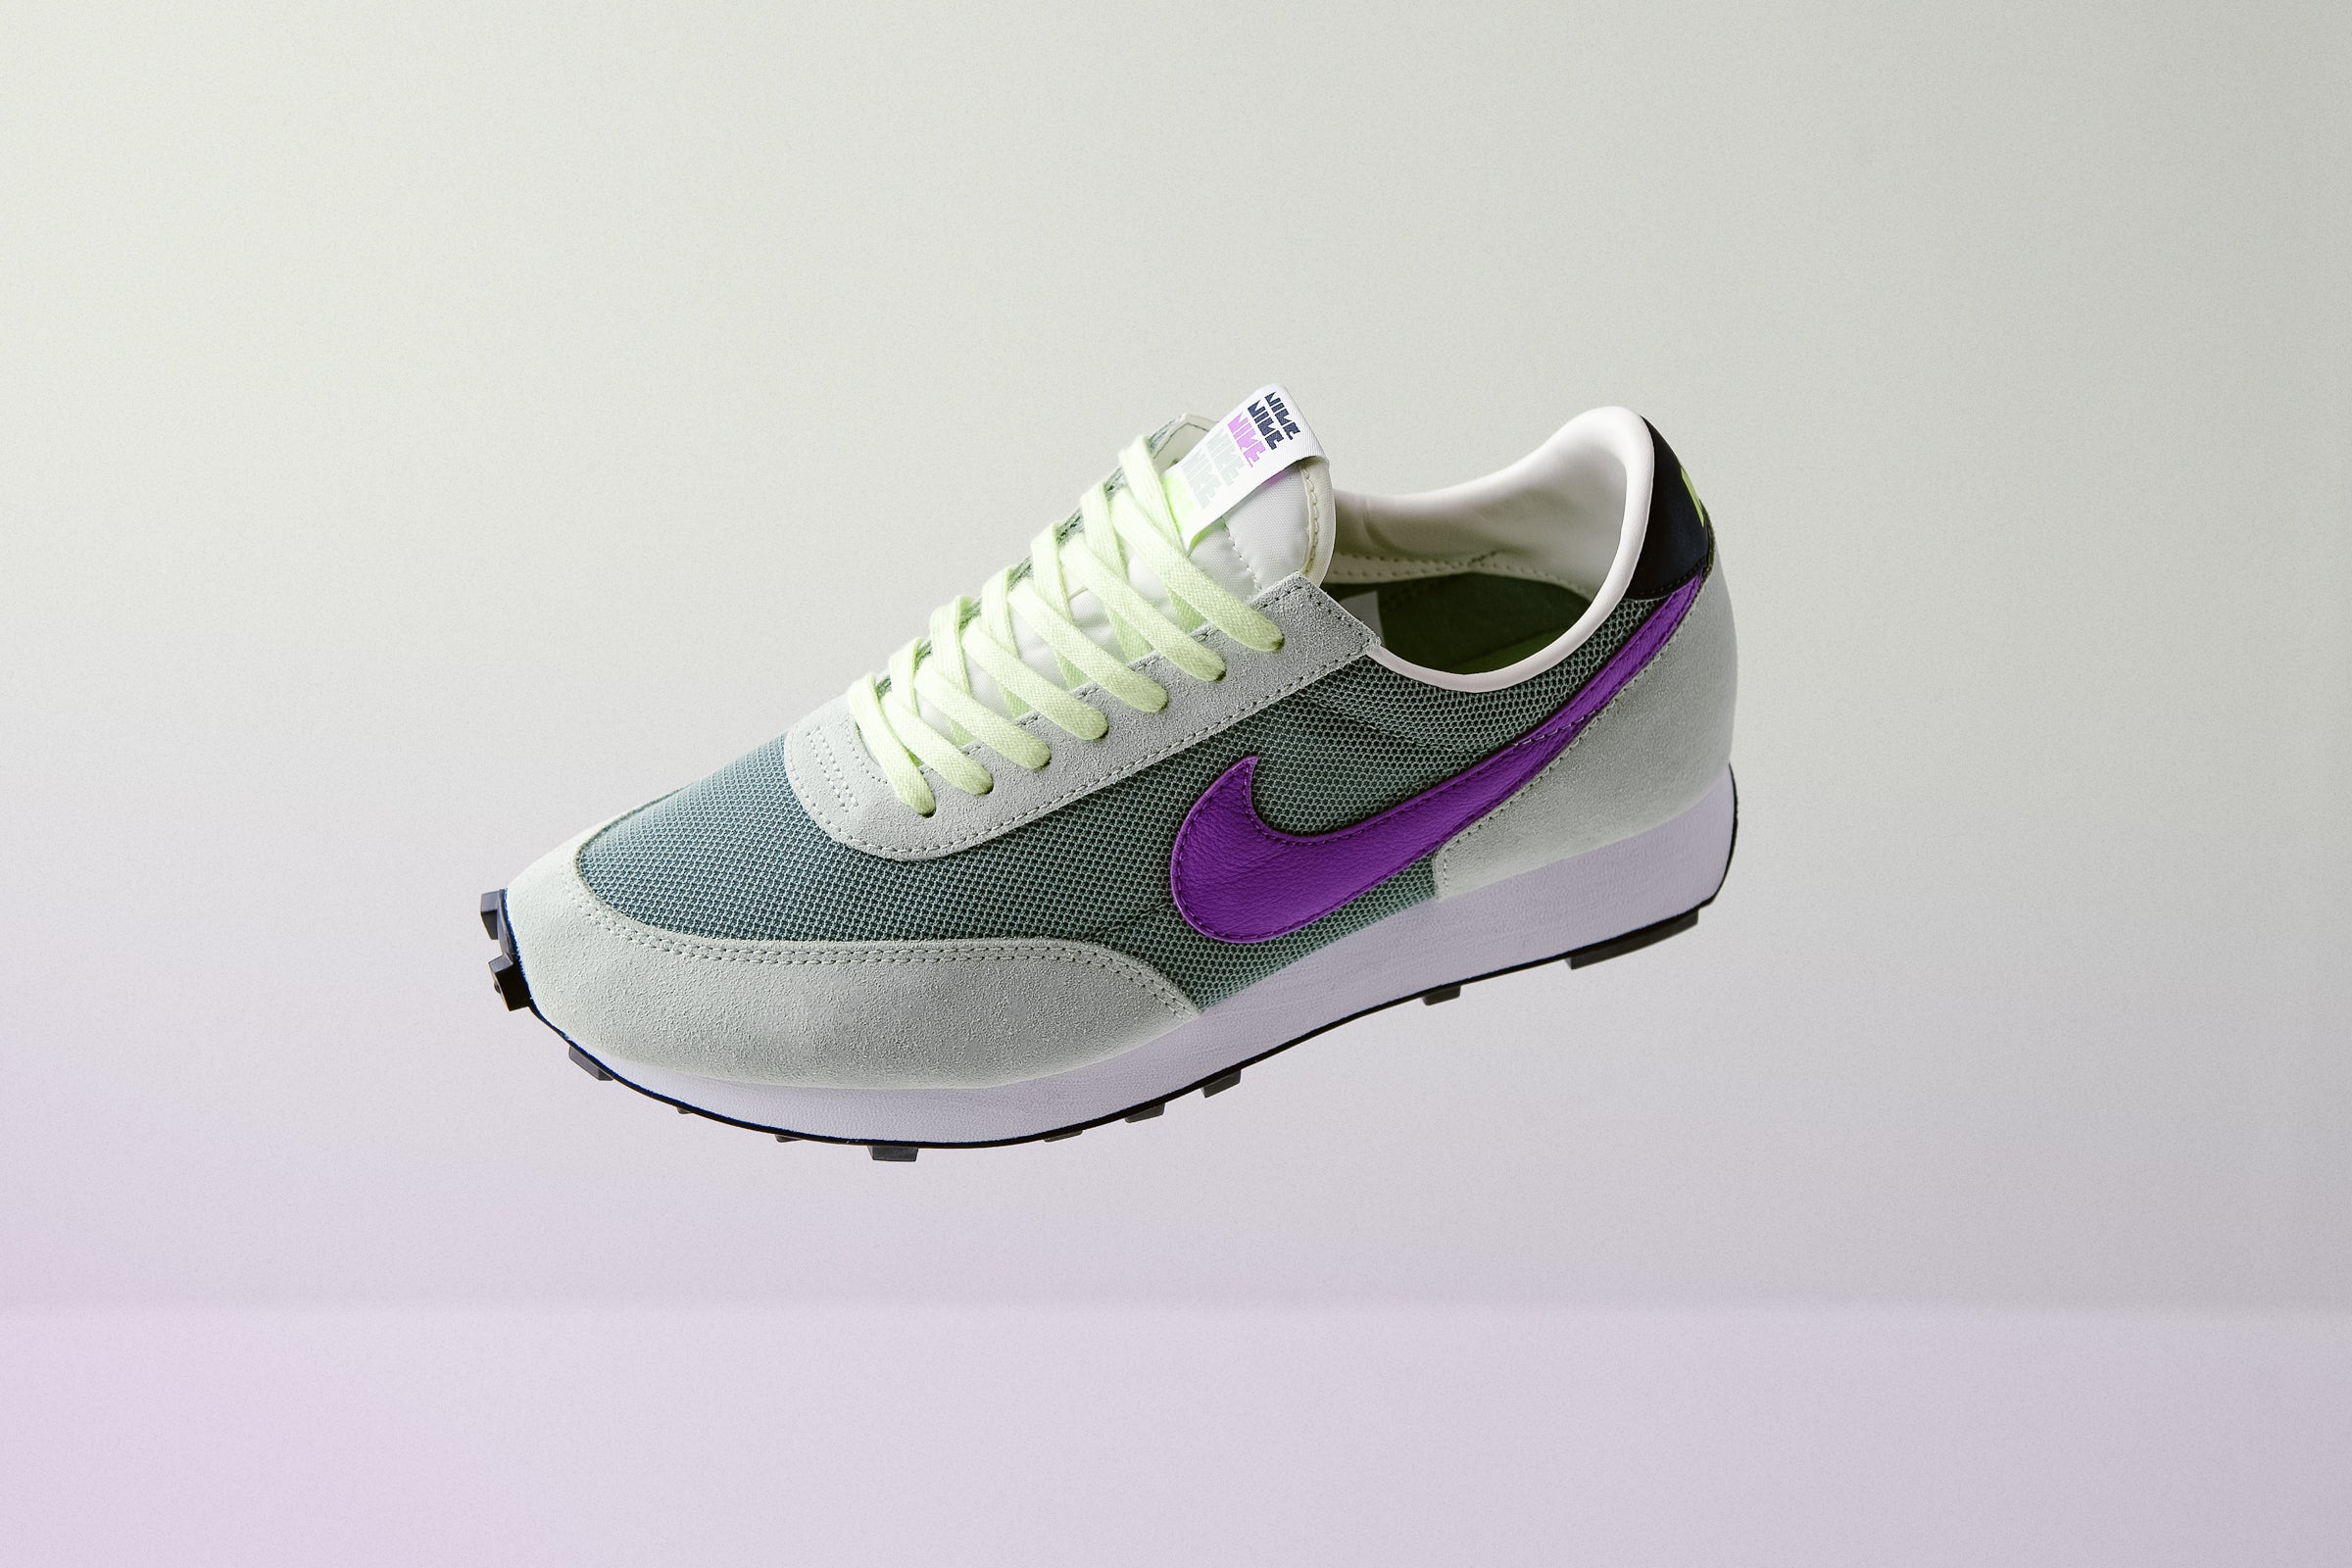 NSW Holiday 19 : The Story of the Nike Daybreak Shoes - Always in Colour